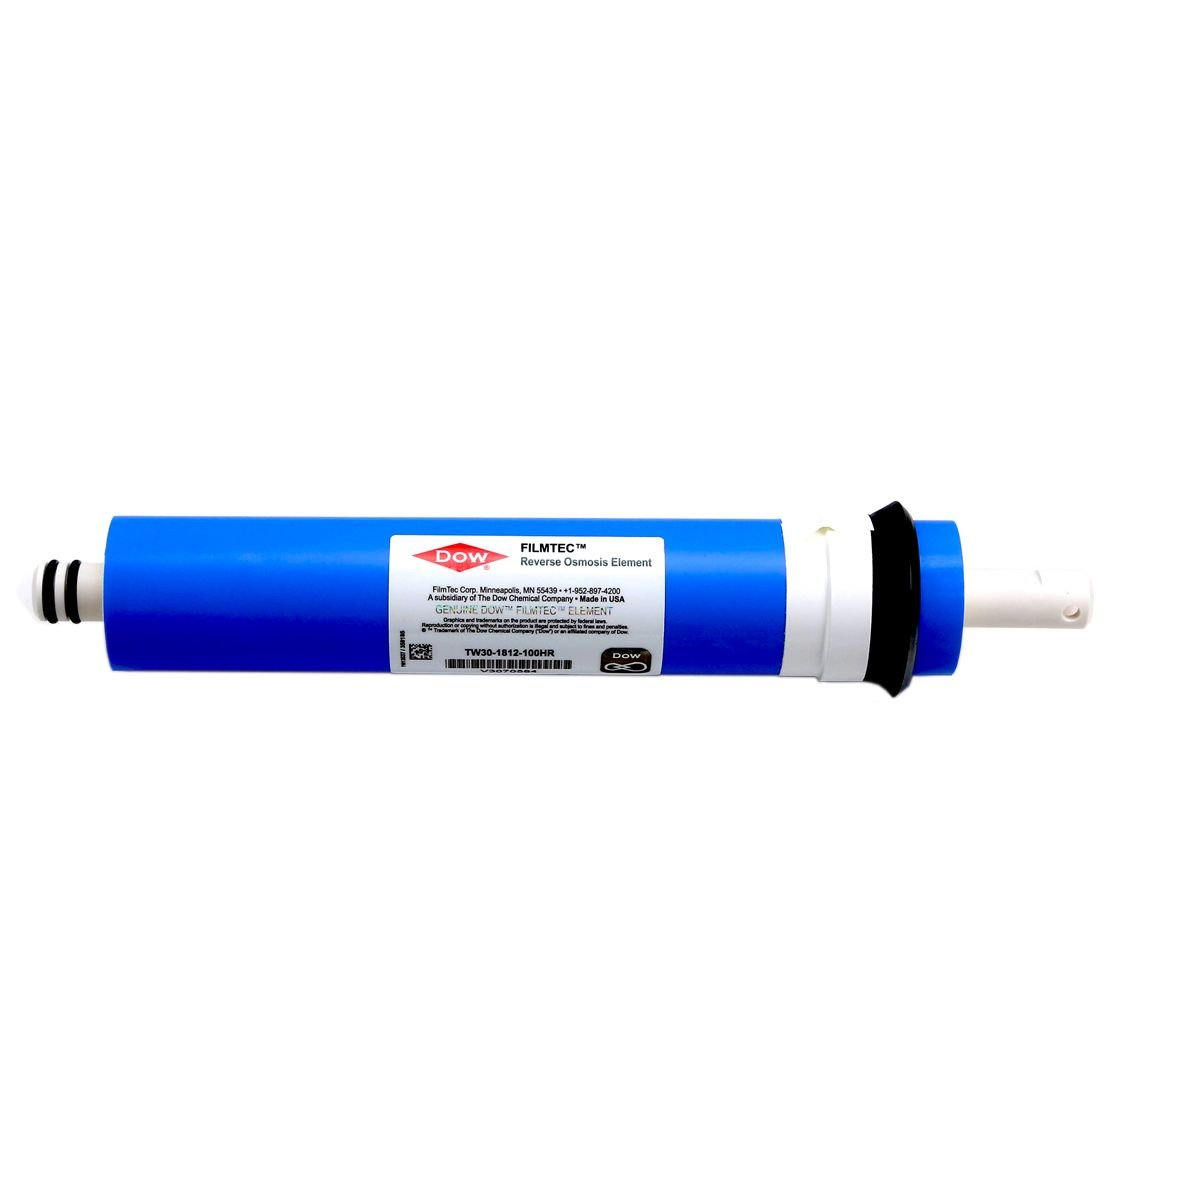 TW30-1812-100HR Dow Filmtec 100 gpd High Rejection TFC Replacement Membrane for Undersink Reverse Osmosis (RO) System (New Model Replaces TW30-1812-100)